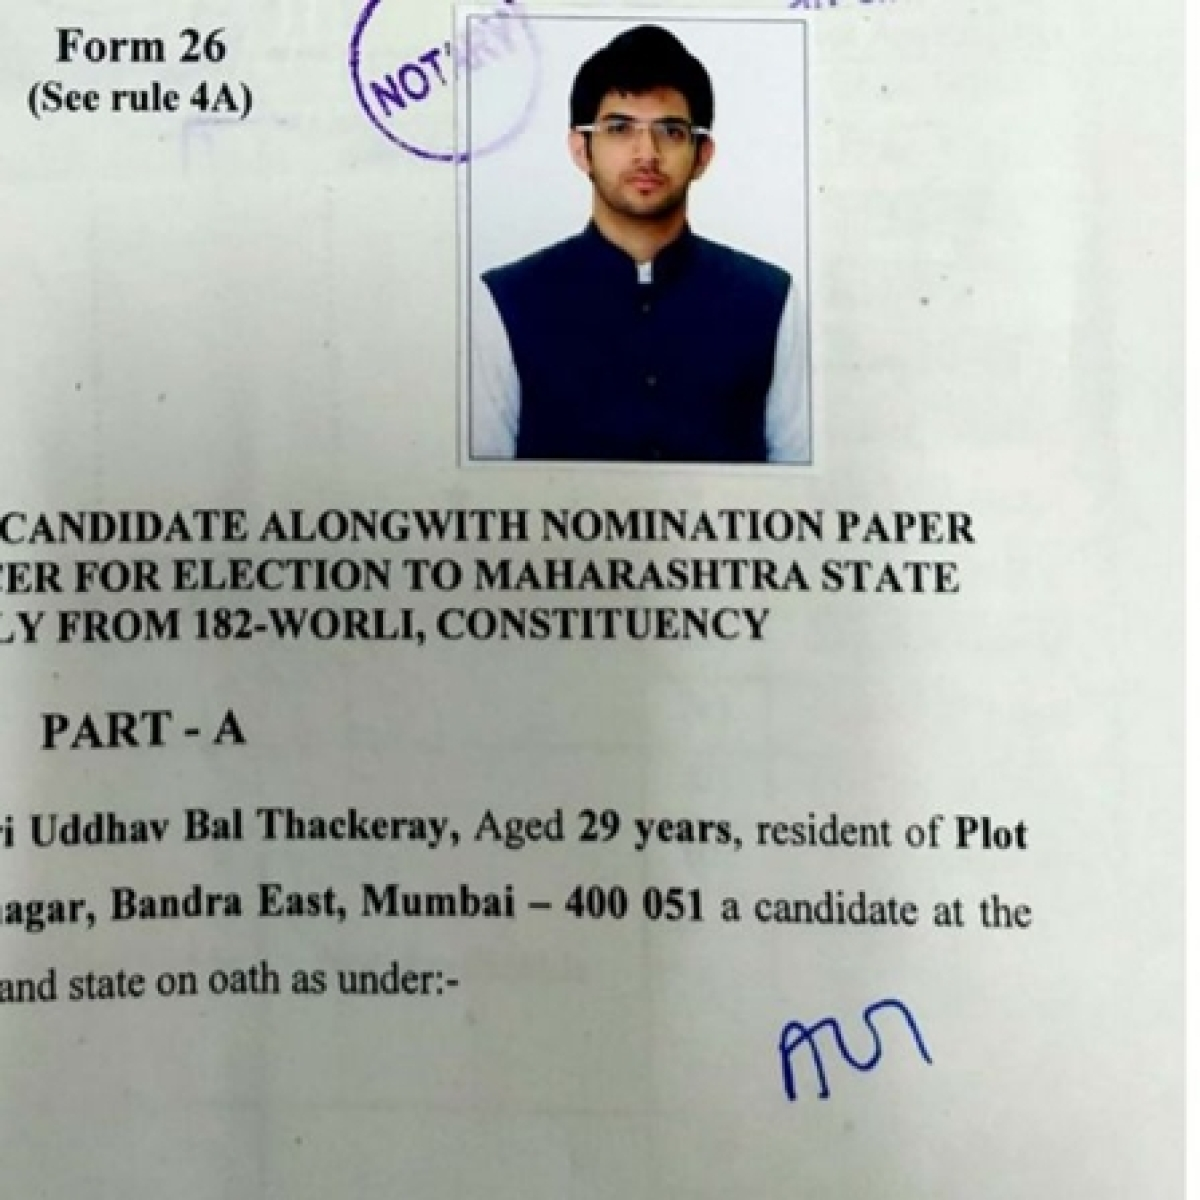 Rs 16.05 crore assets including BMW car: Here's Aaditya Thackeray's total worth as per his election affidavit